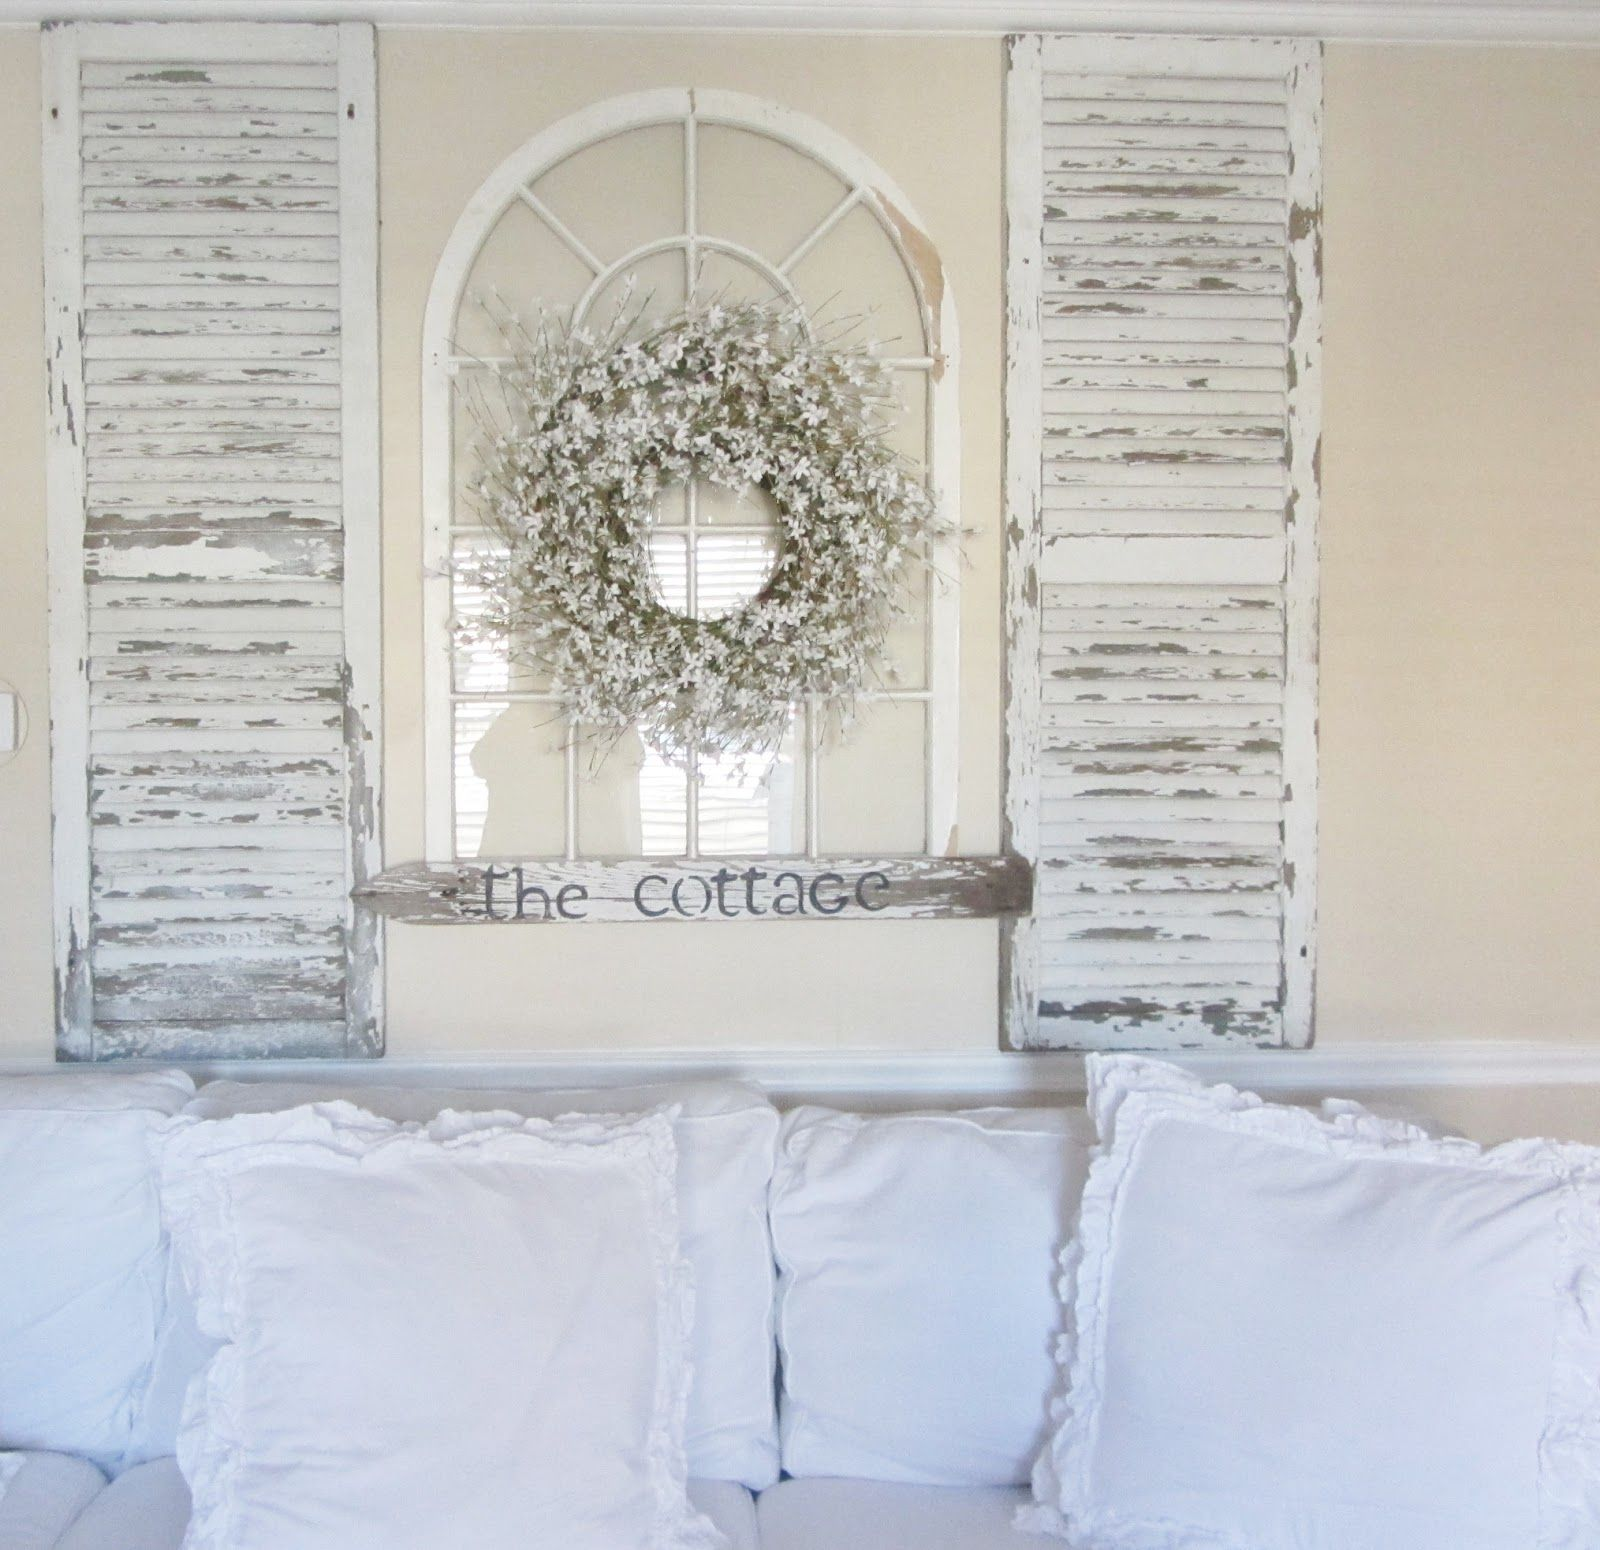 Decorating With Old Shutters Taking And An Arch Window For A Focal Point Over The